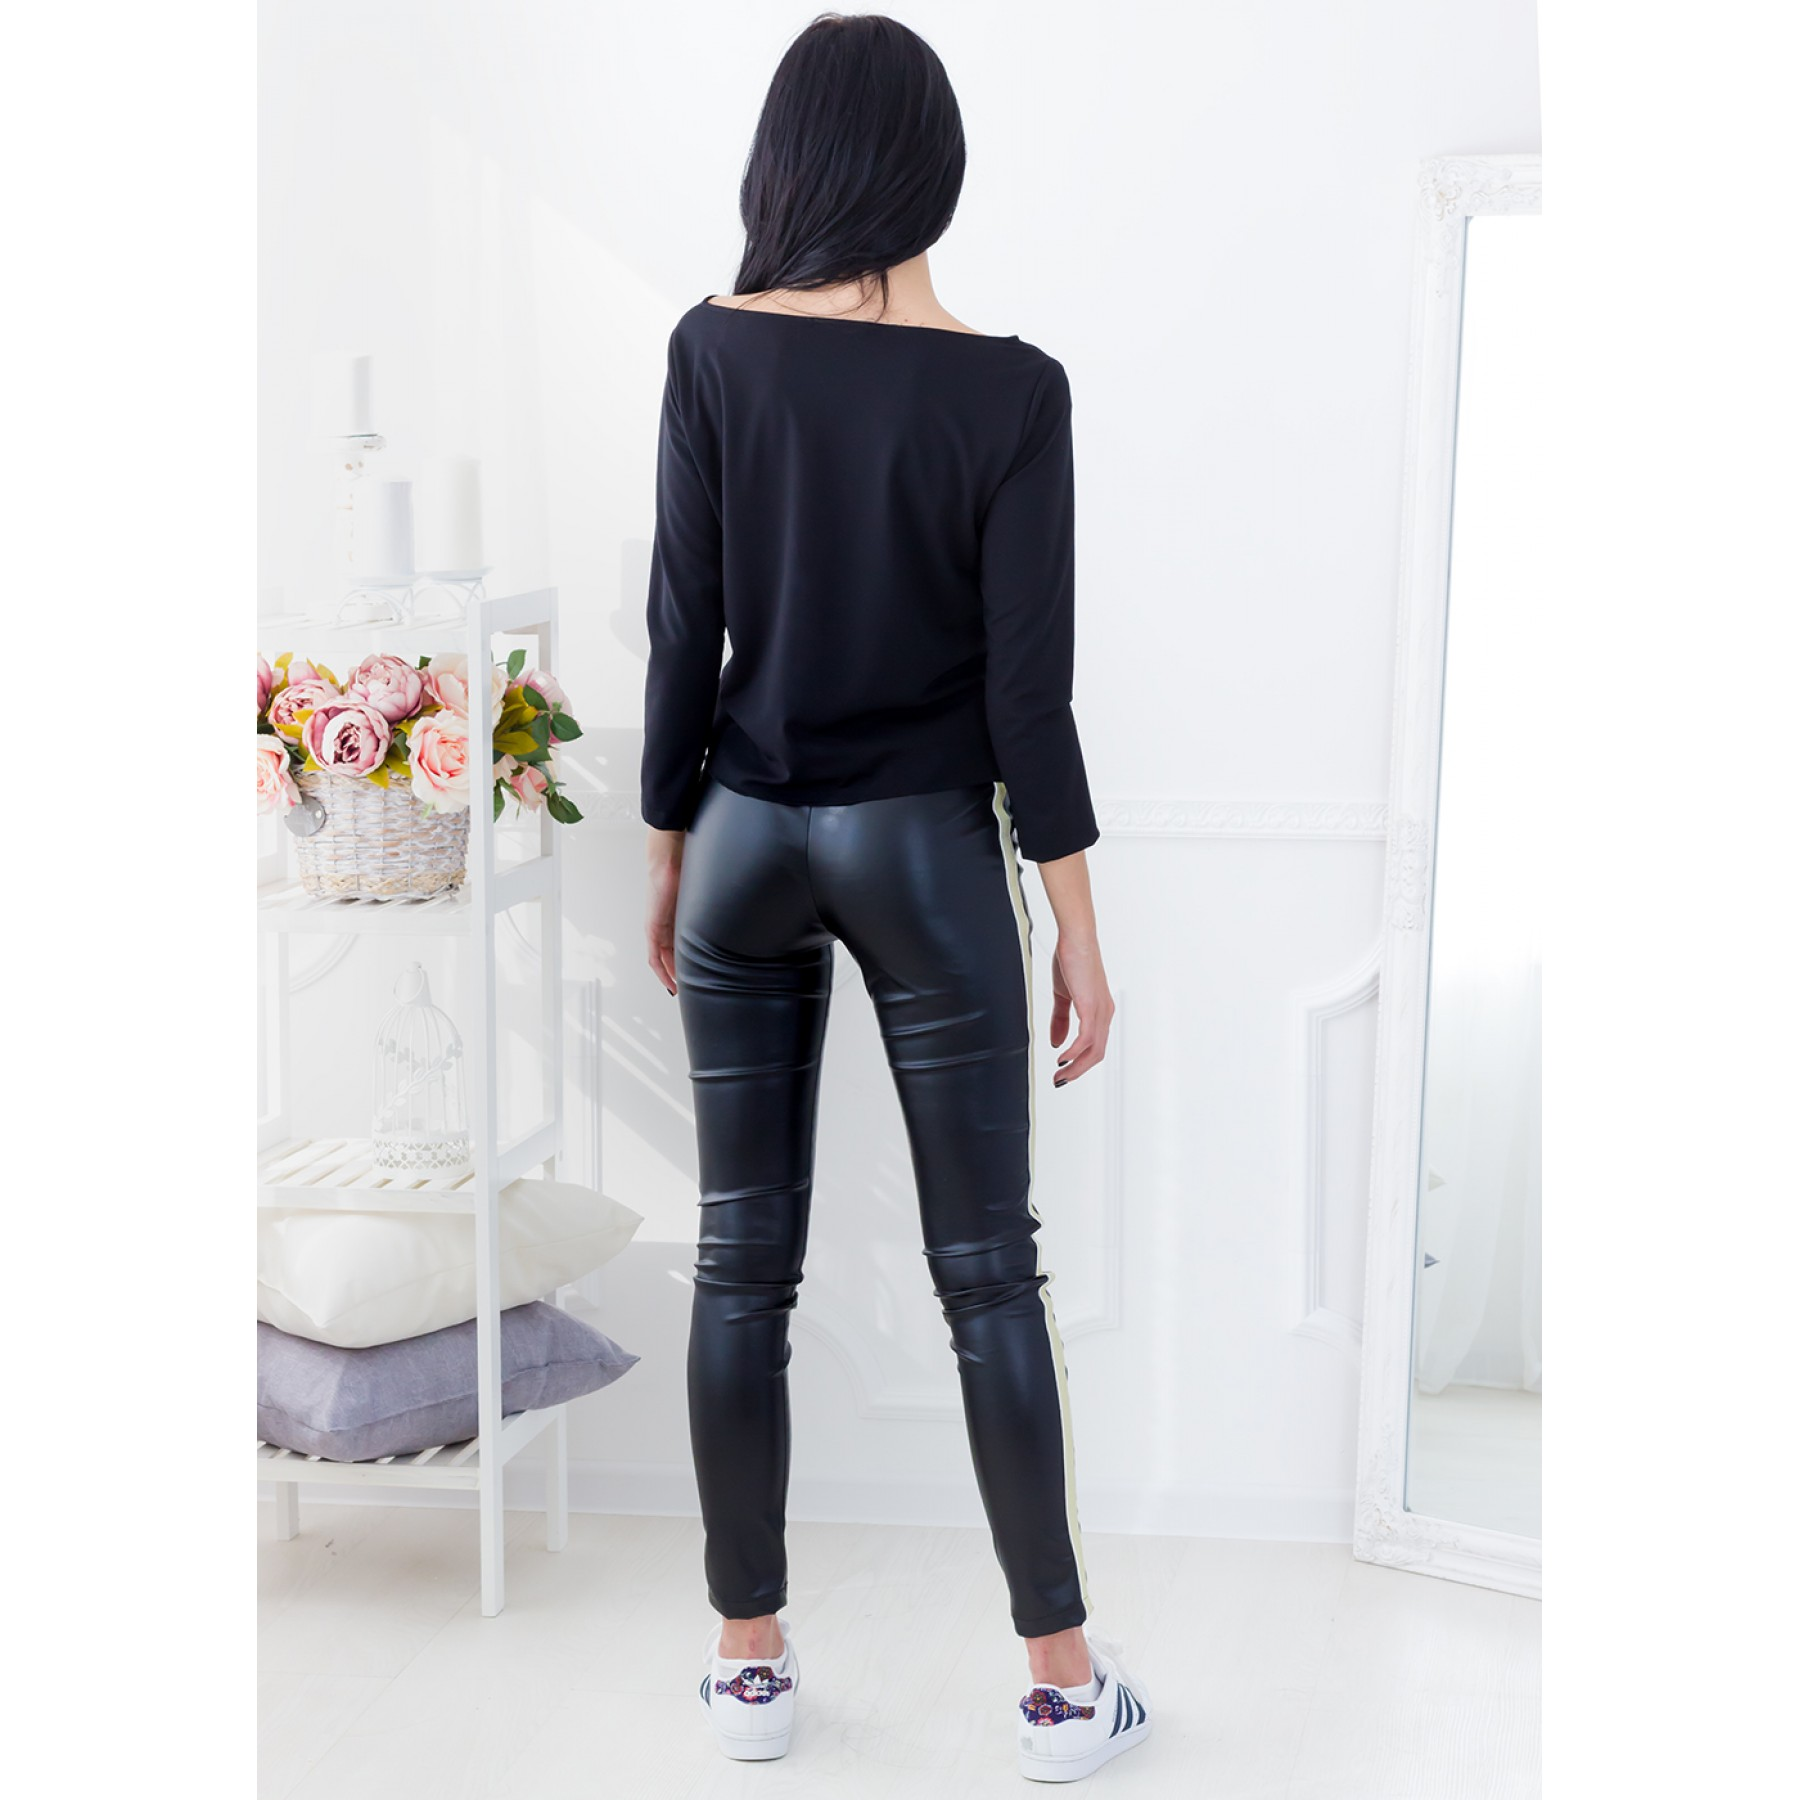 Monique Leather Pants (Black)